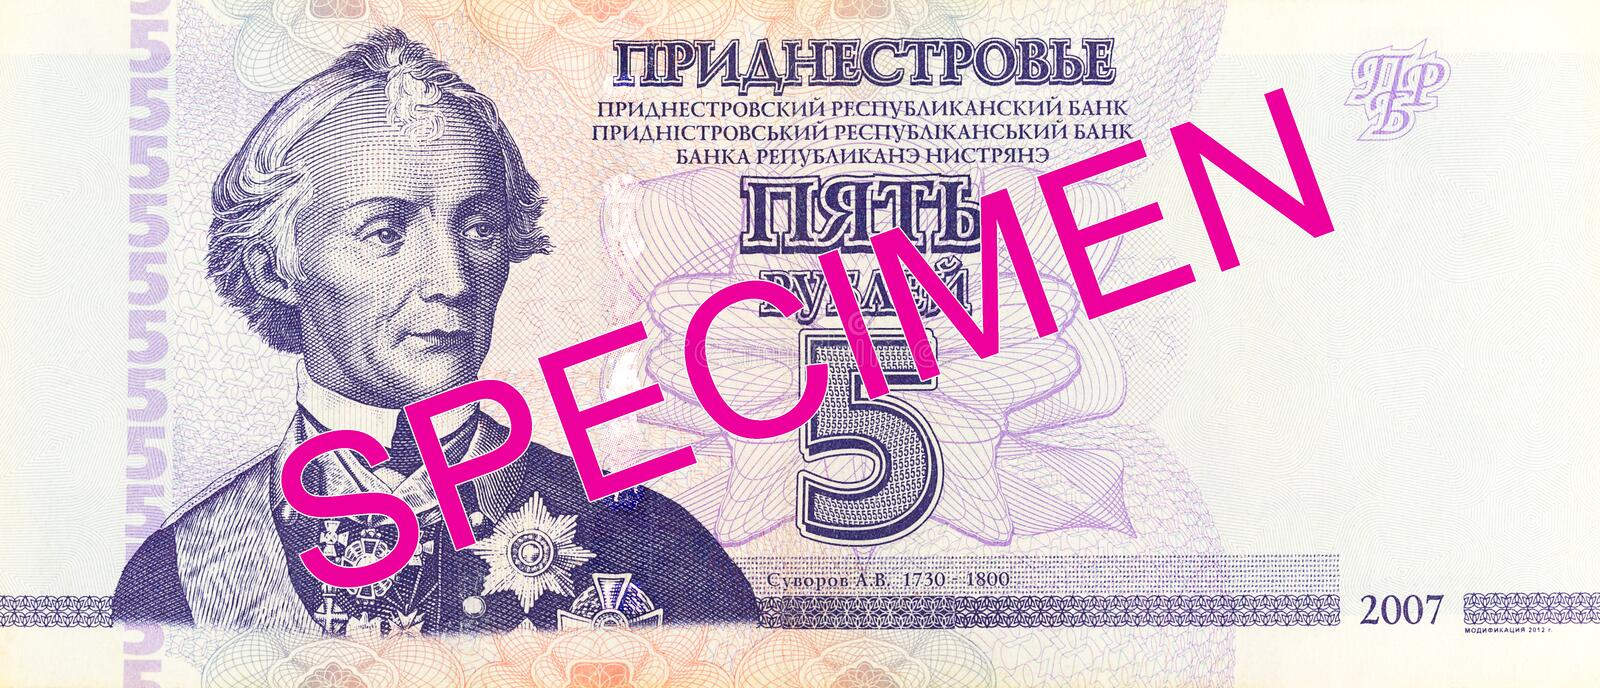 5 transnistrian ruble banknote obverse specimen. Single 5 transnistrian ruble banknote obverse specimen royalty free stock photography